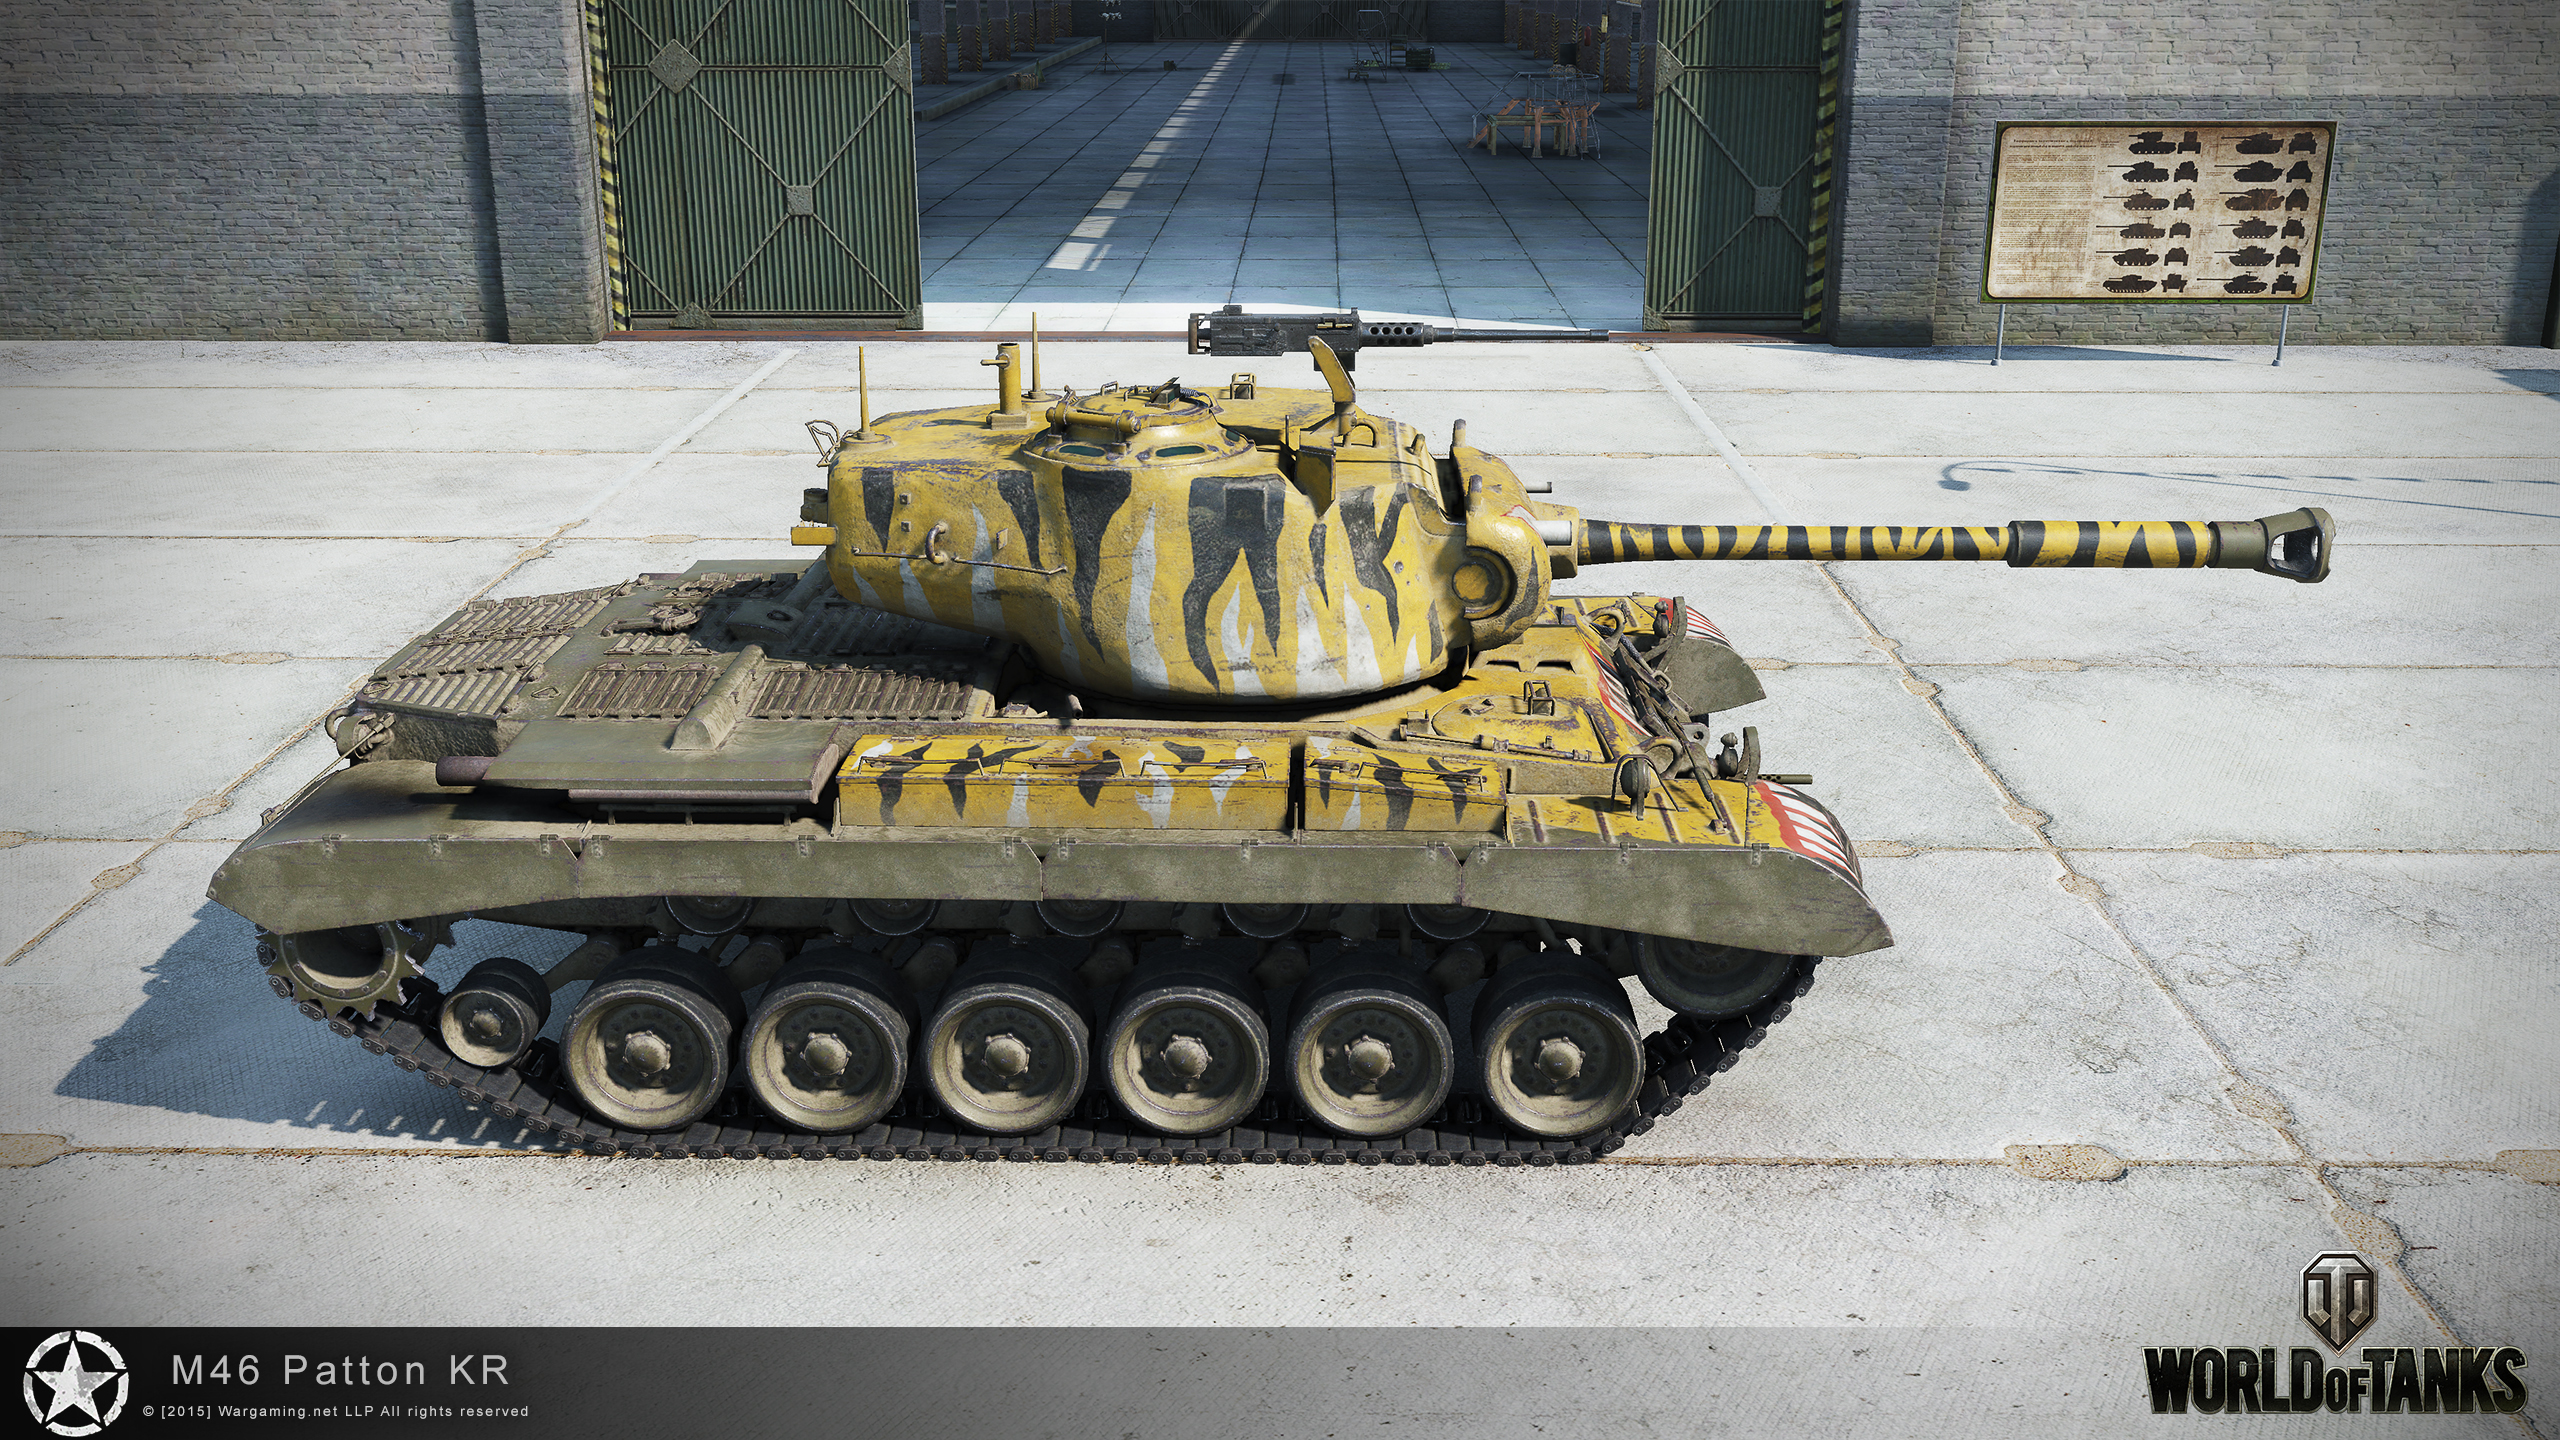 lorraine 39 l am world of tanks